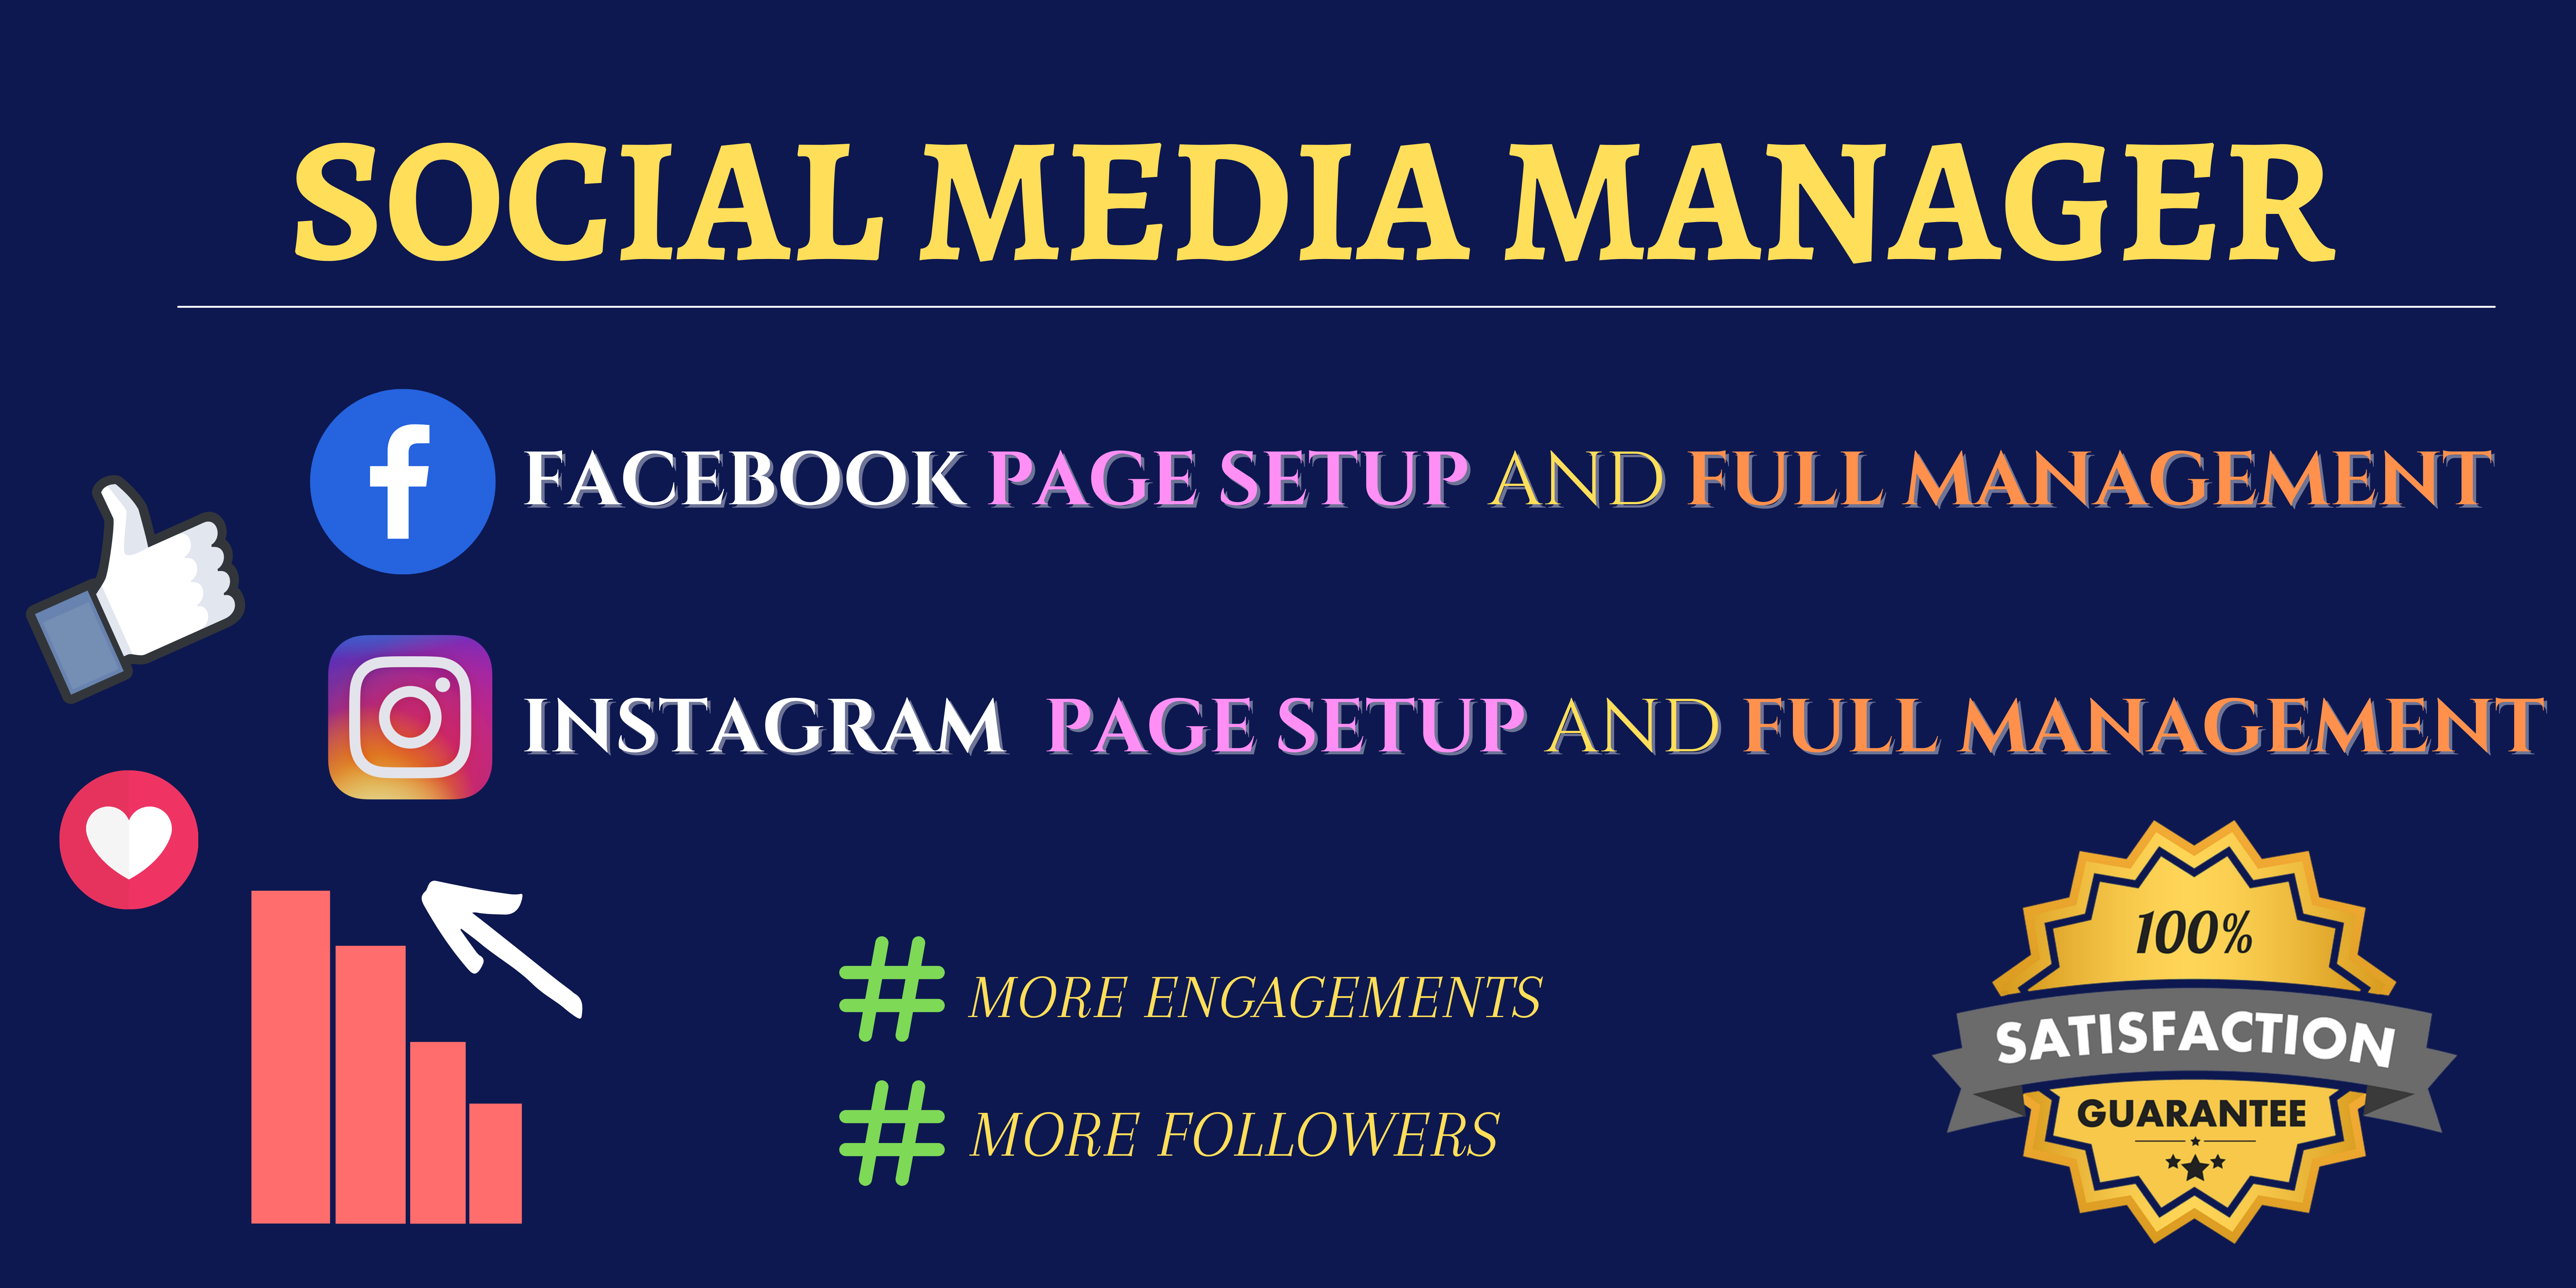 I will be your Social Media Account Manager and Virtual Assistant